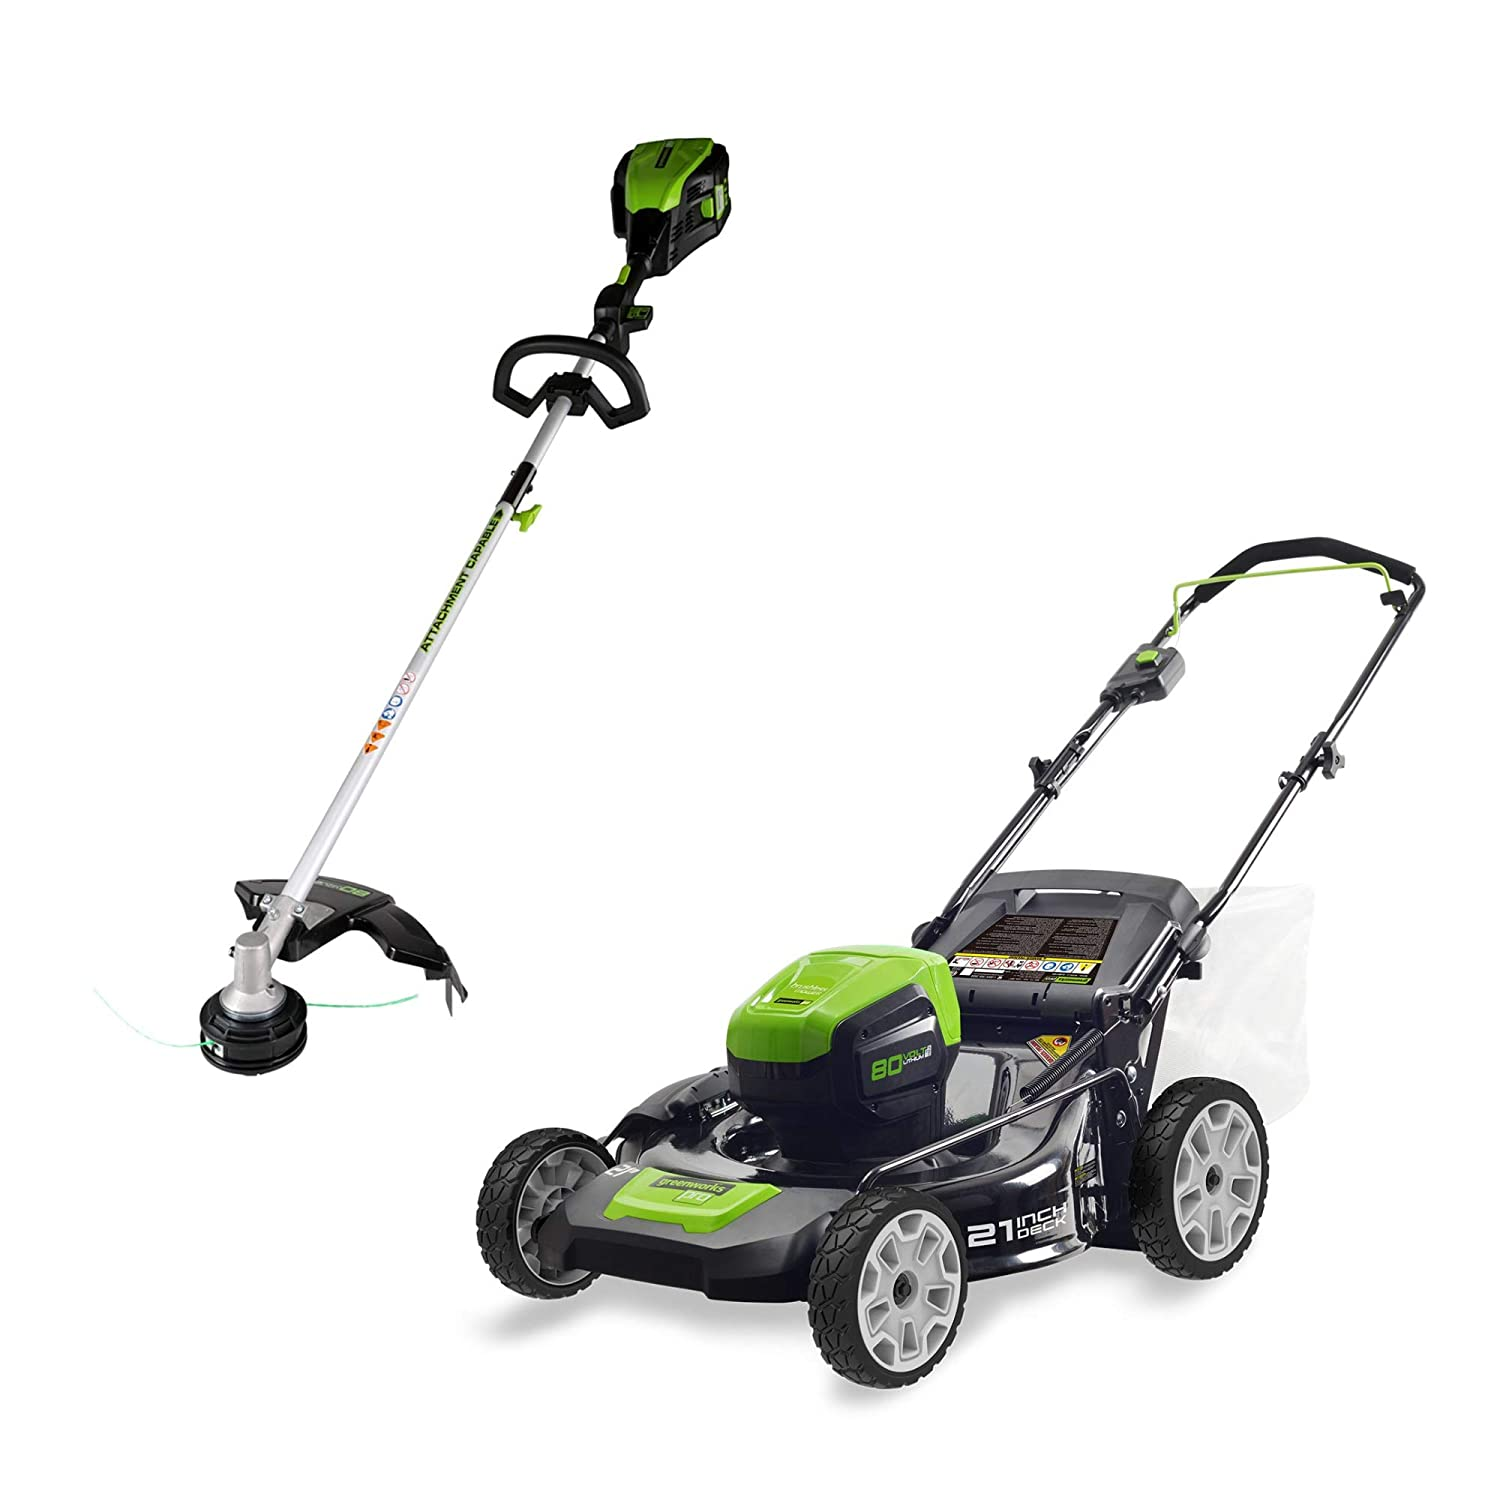 Amazon.com: Greenworks PRO - Cortacésped inalámbrico de 21 ...